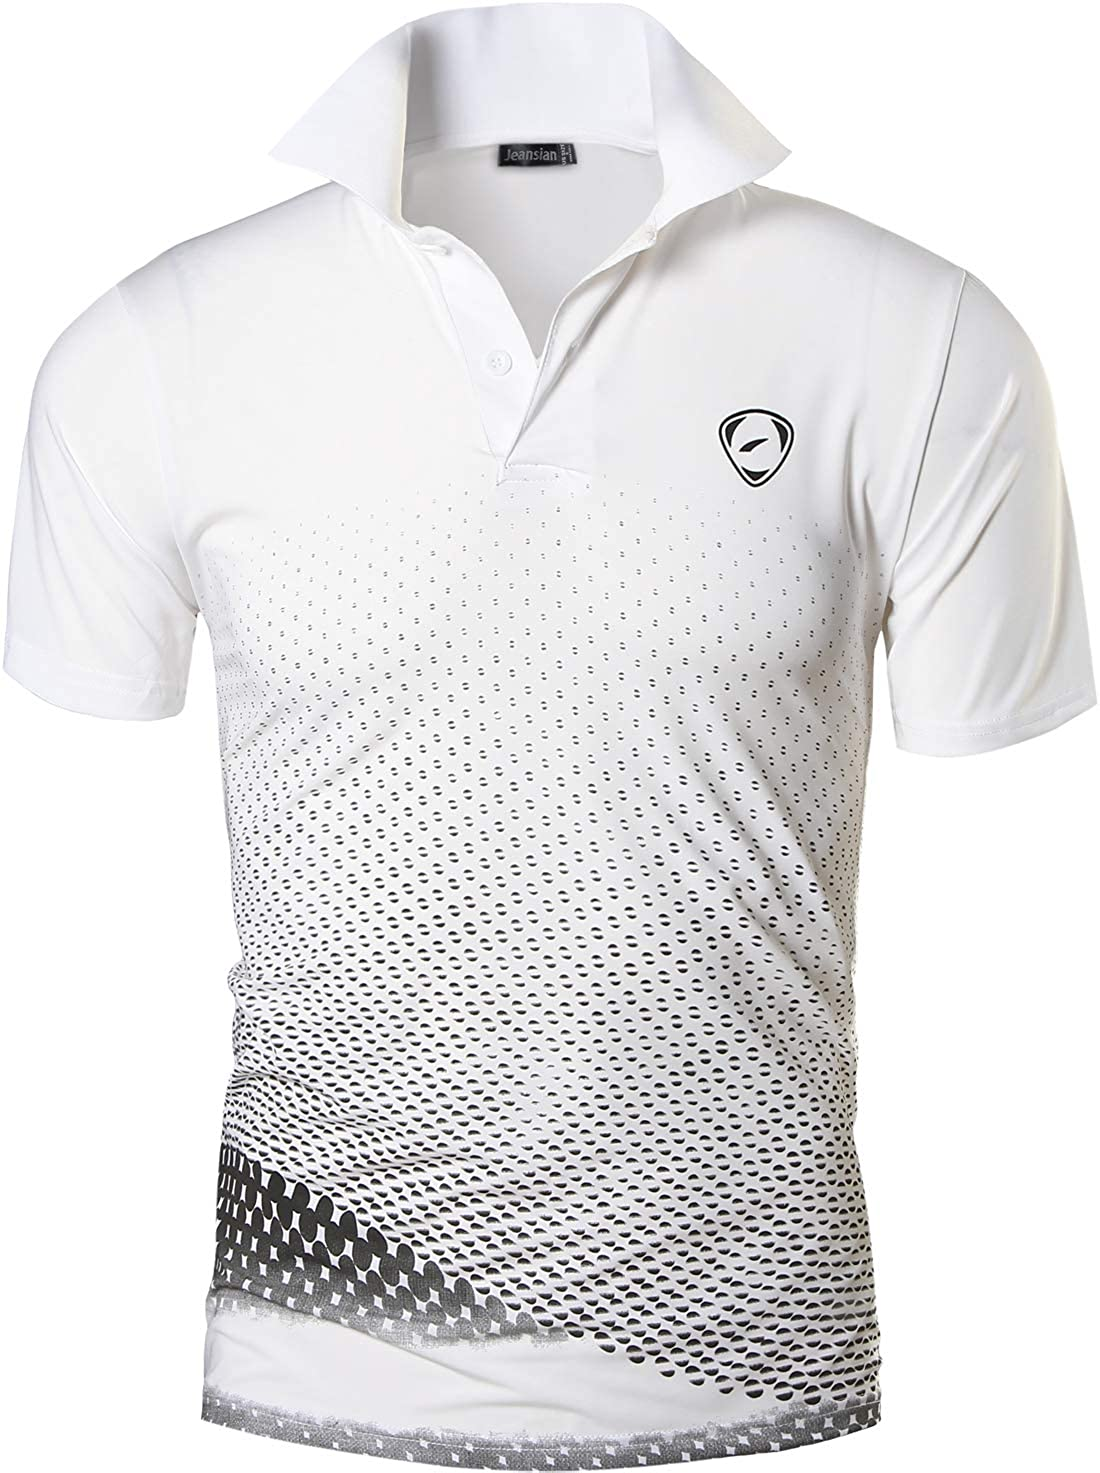 jeansian Mens Sport Outdoor Quick Dry Short Sleeves Polo Tee T-Shirt Tops LSL195